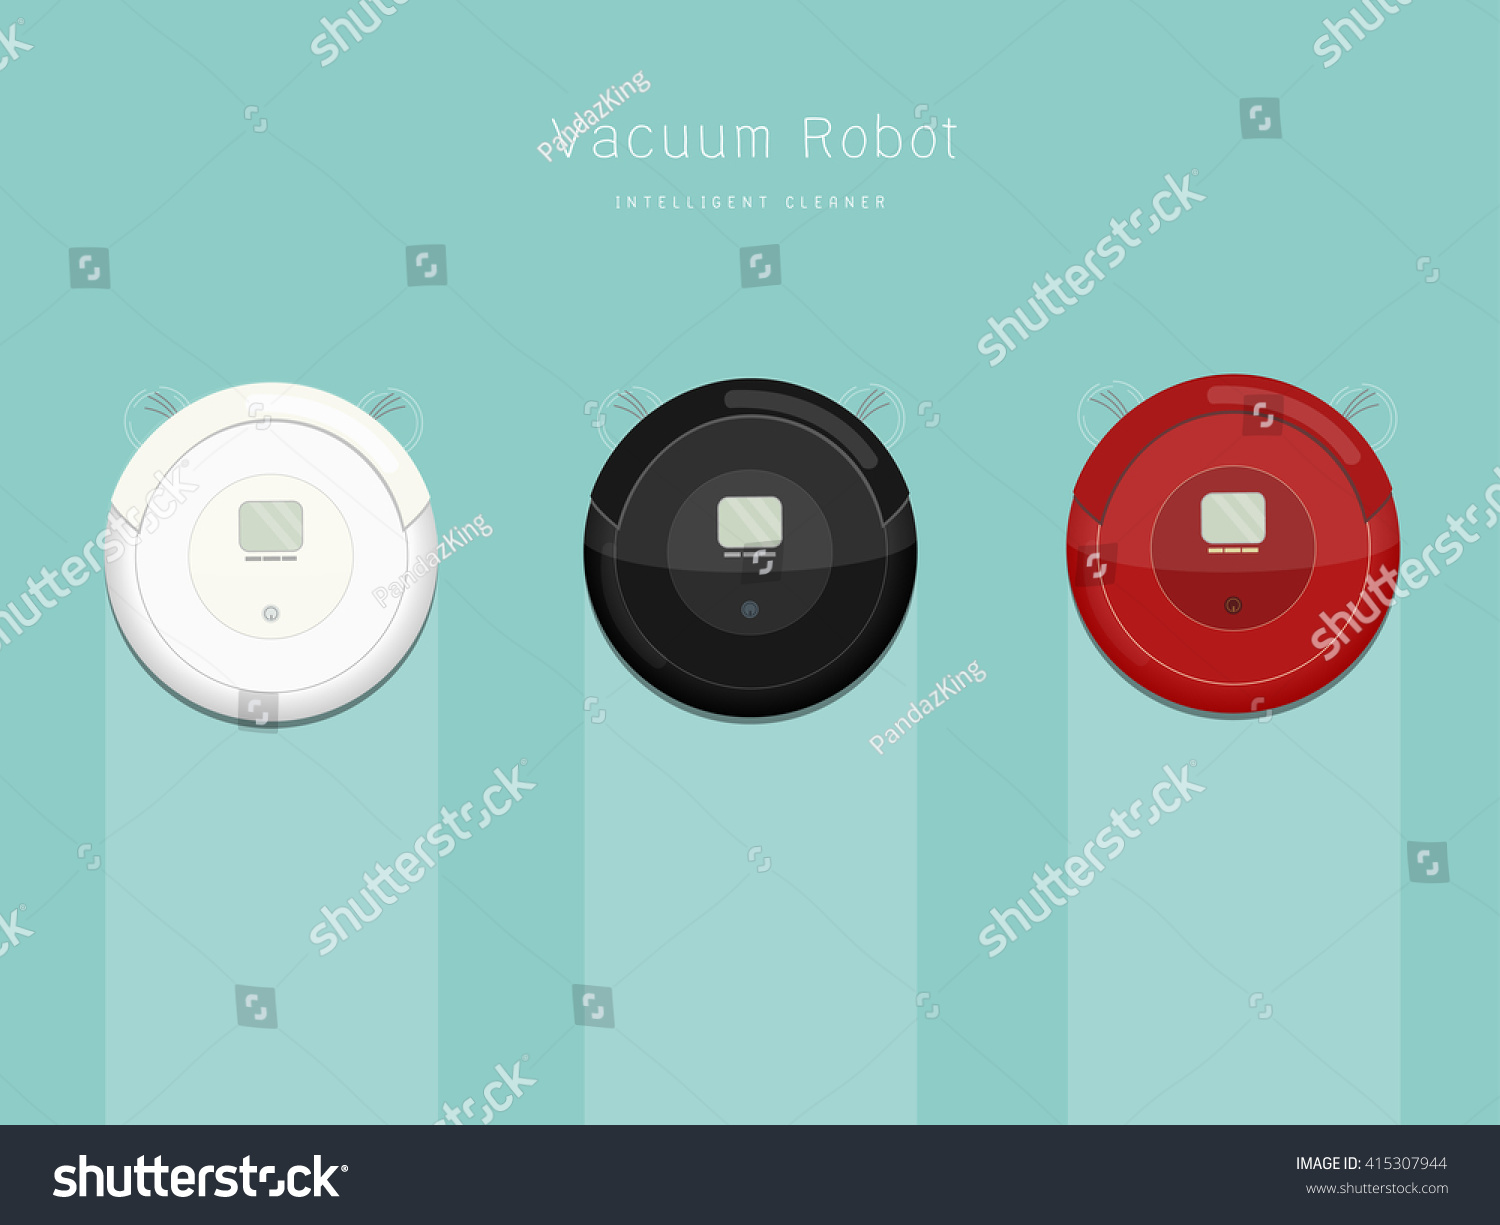 Graphic Of Vacuum Robot In Three Difference Colors Robots